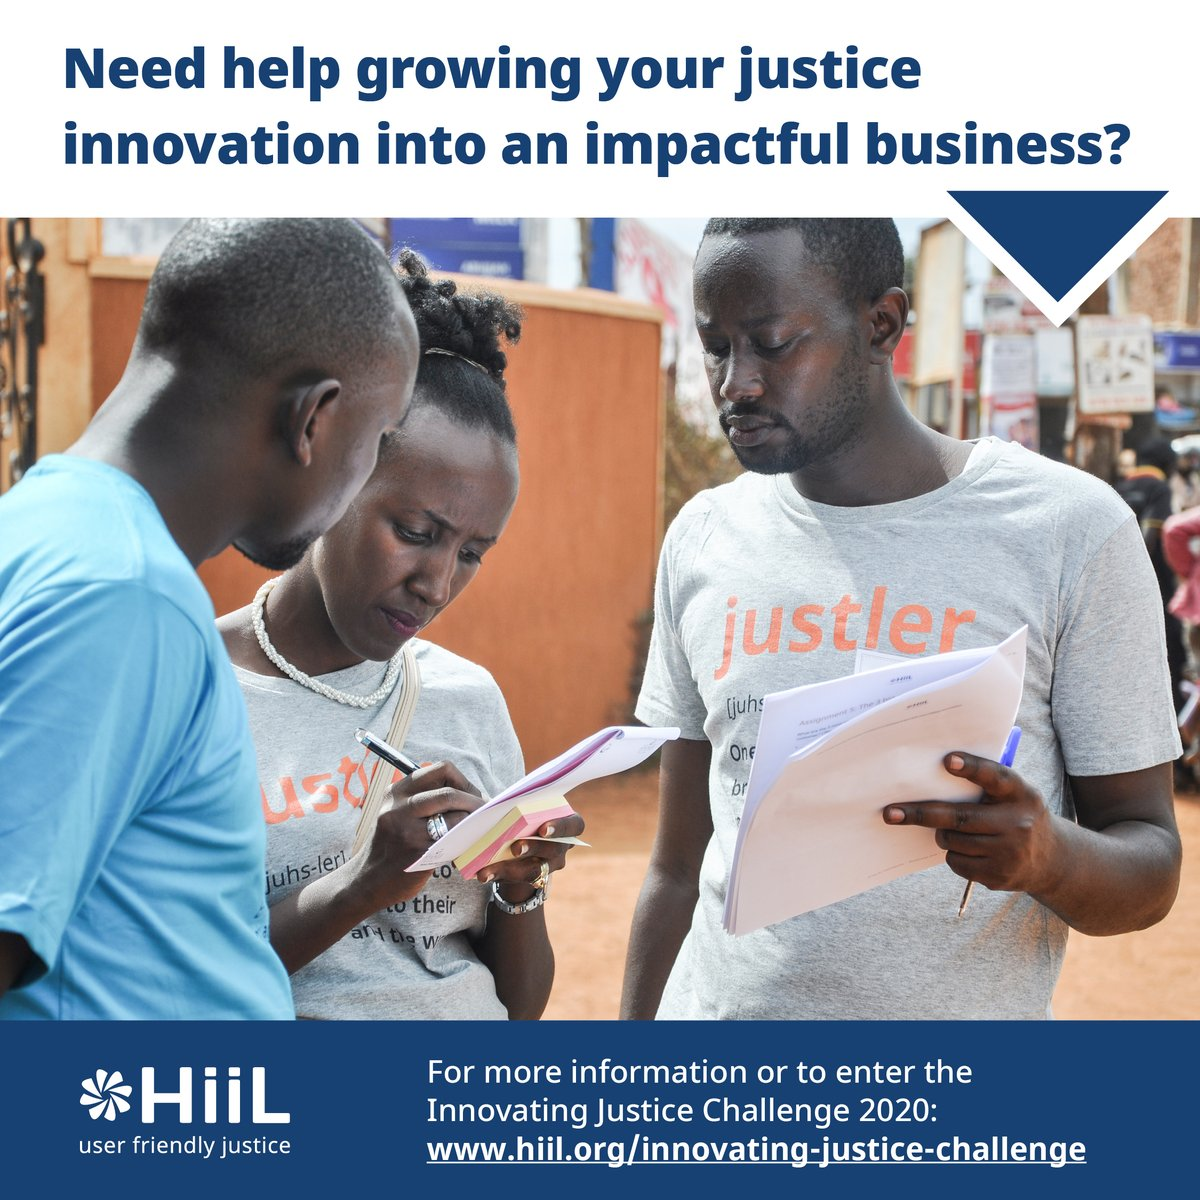 Need help growing your justice innovation into an impactful business?  For more information or to enter the Innovating Justice Challenge 2020: https://t.co/0pEzq8TAbK  Apply by 5 August 2020 https://t.co/EhbgQeyVx6